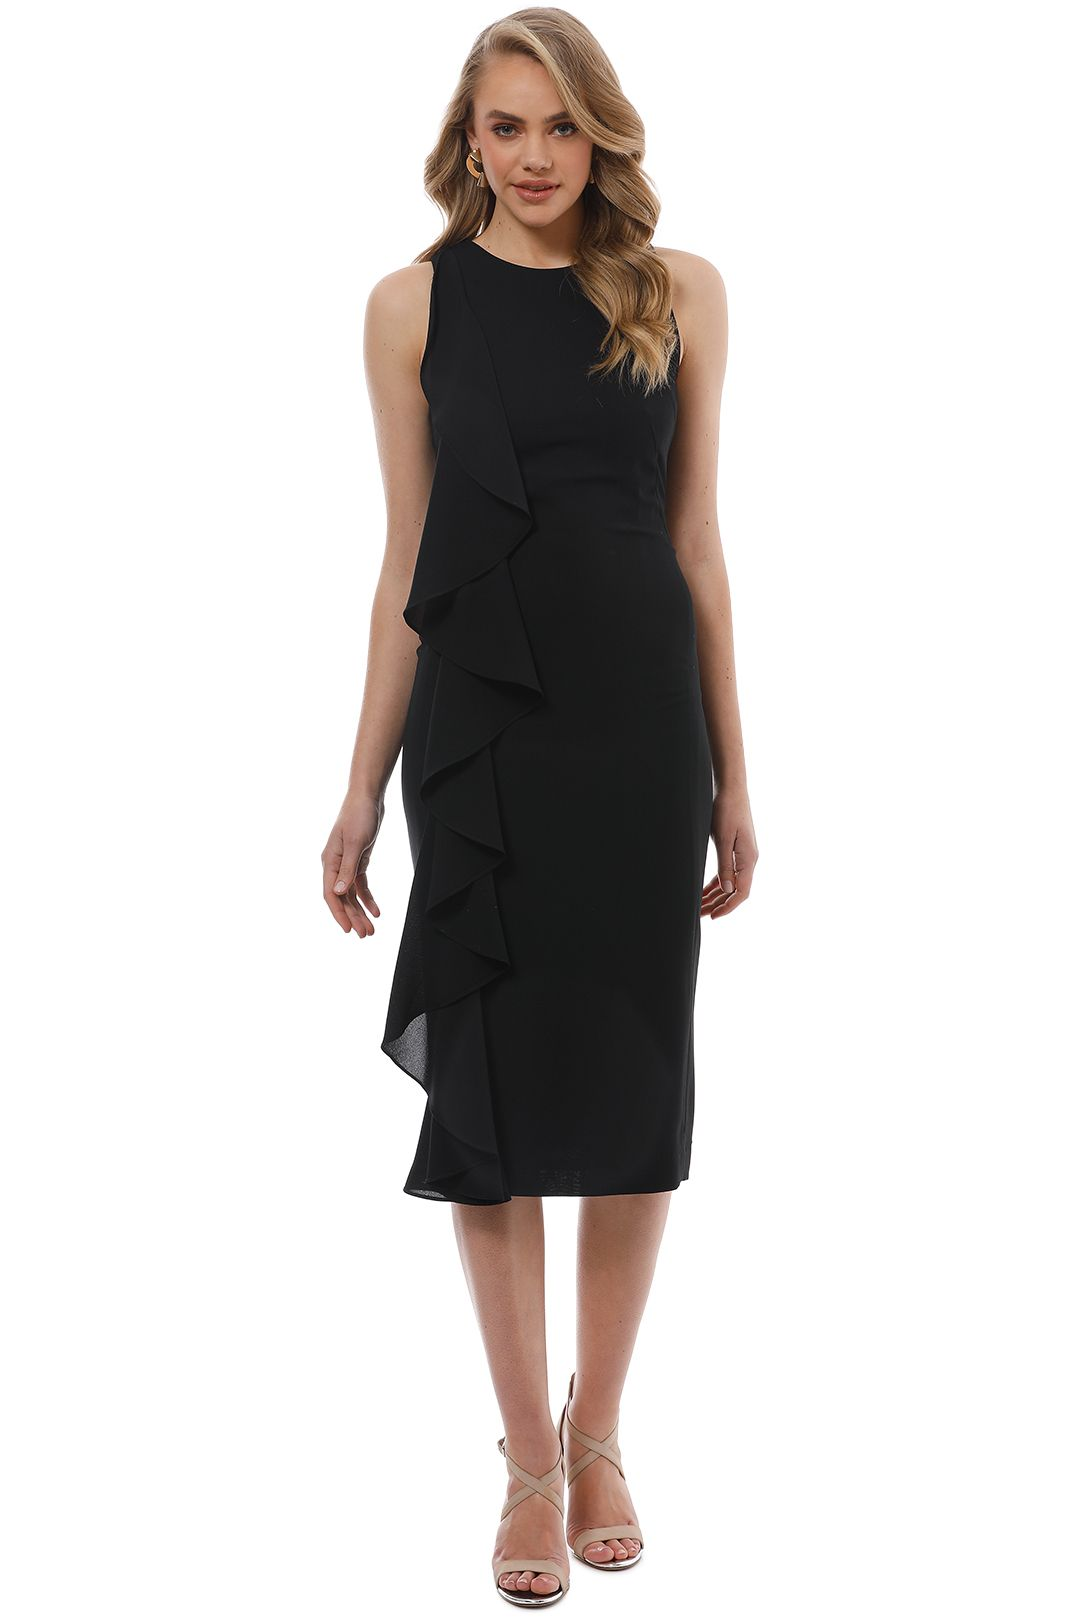 Trelise Cooper - Light My Fire Dress - Black - Front